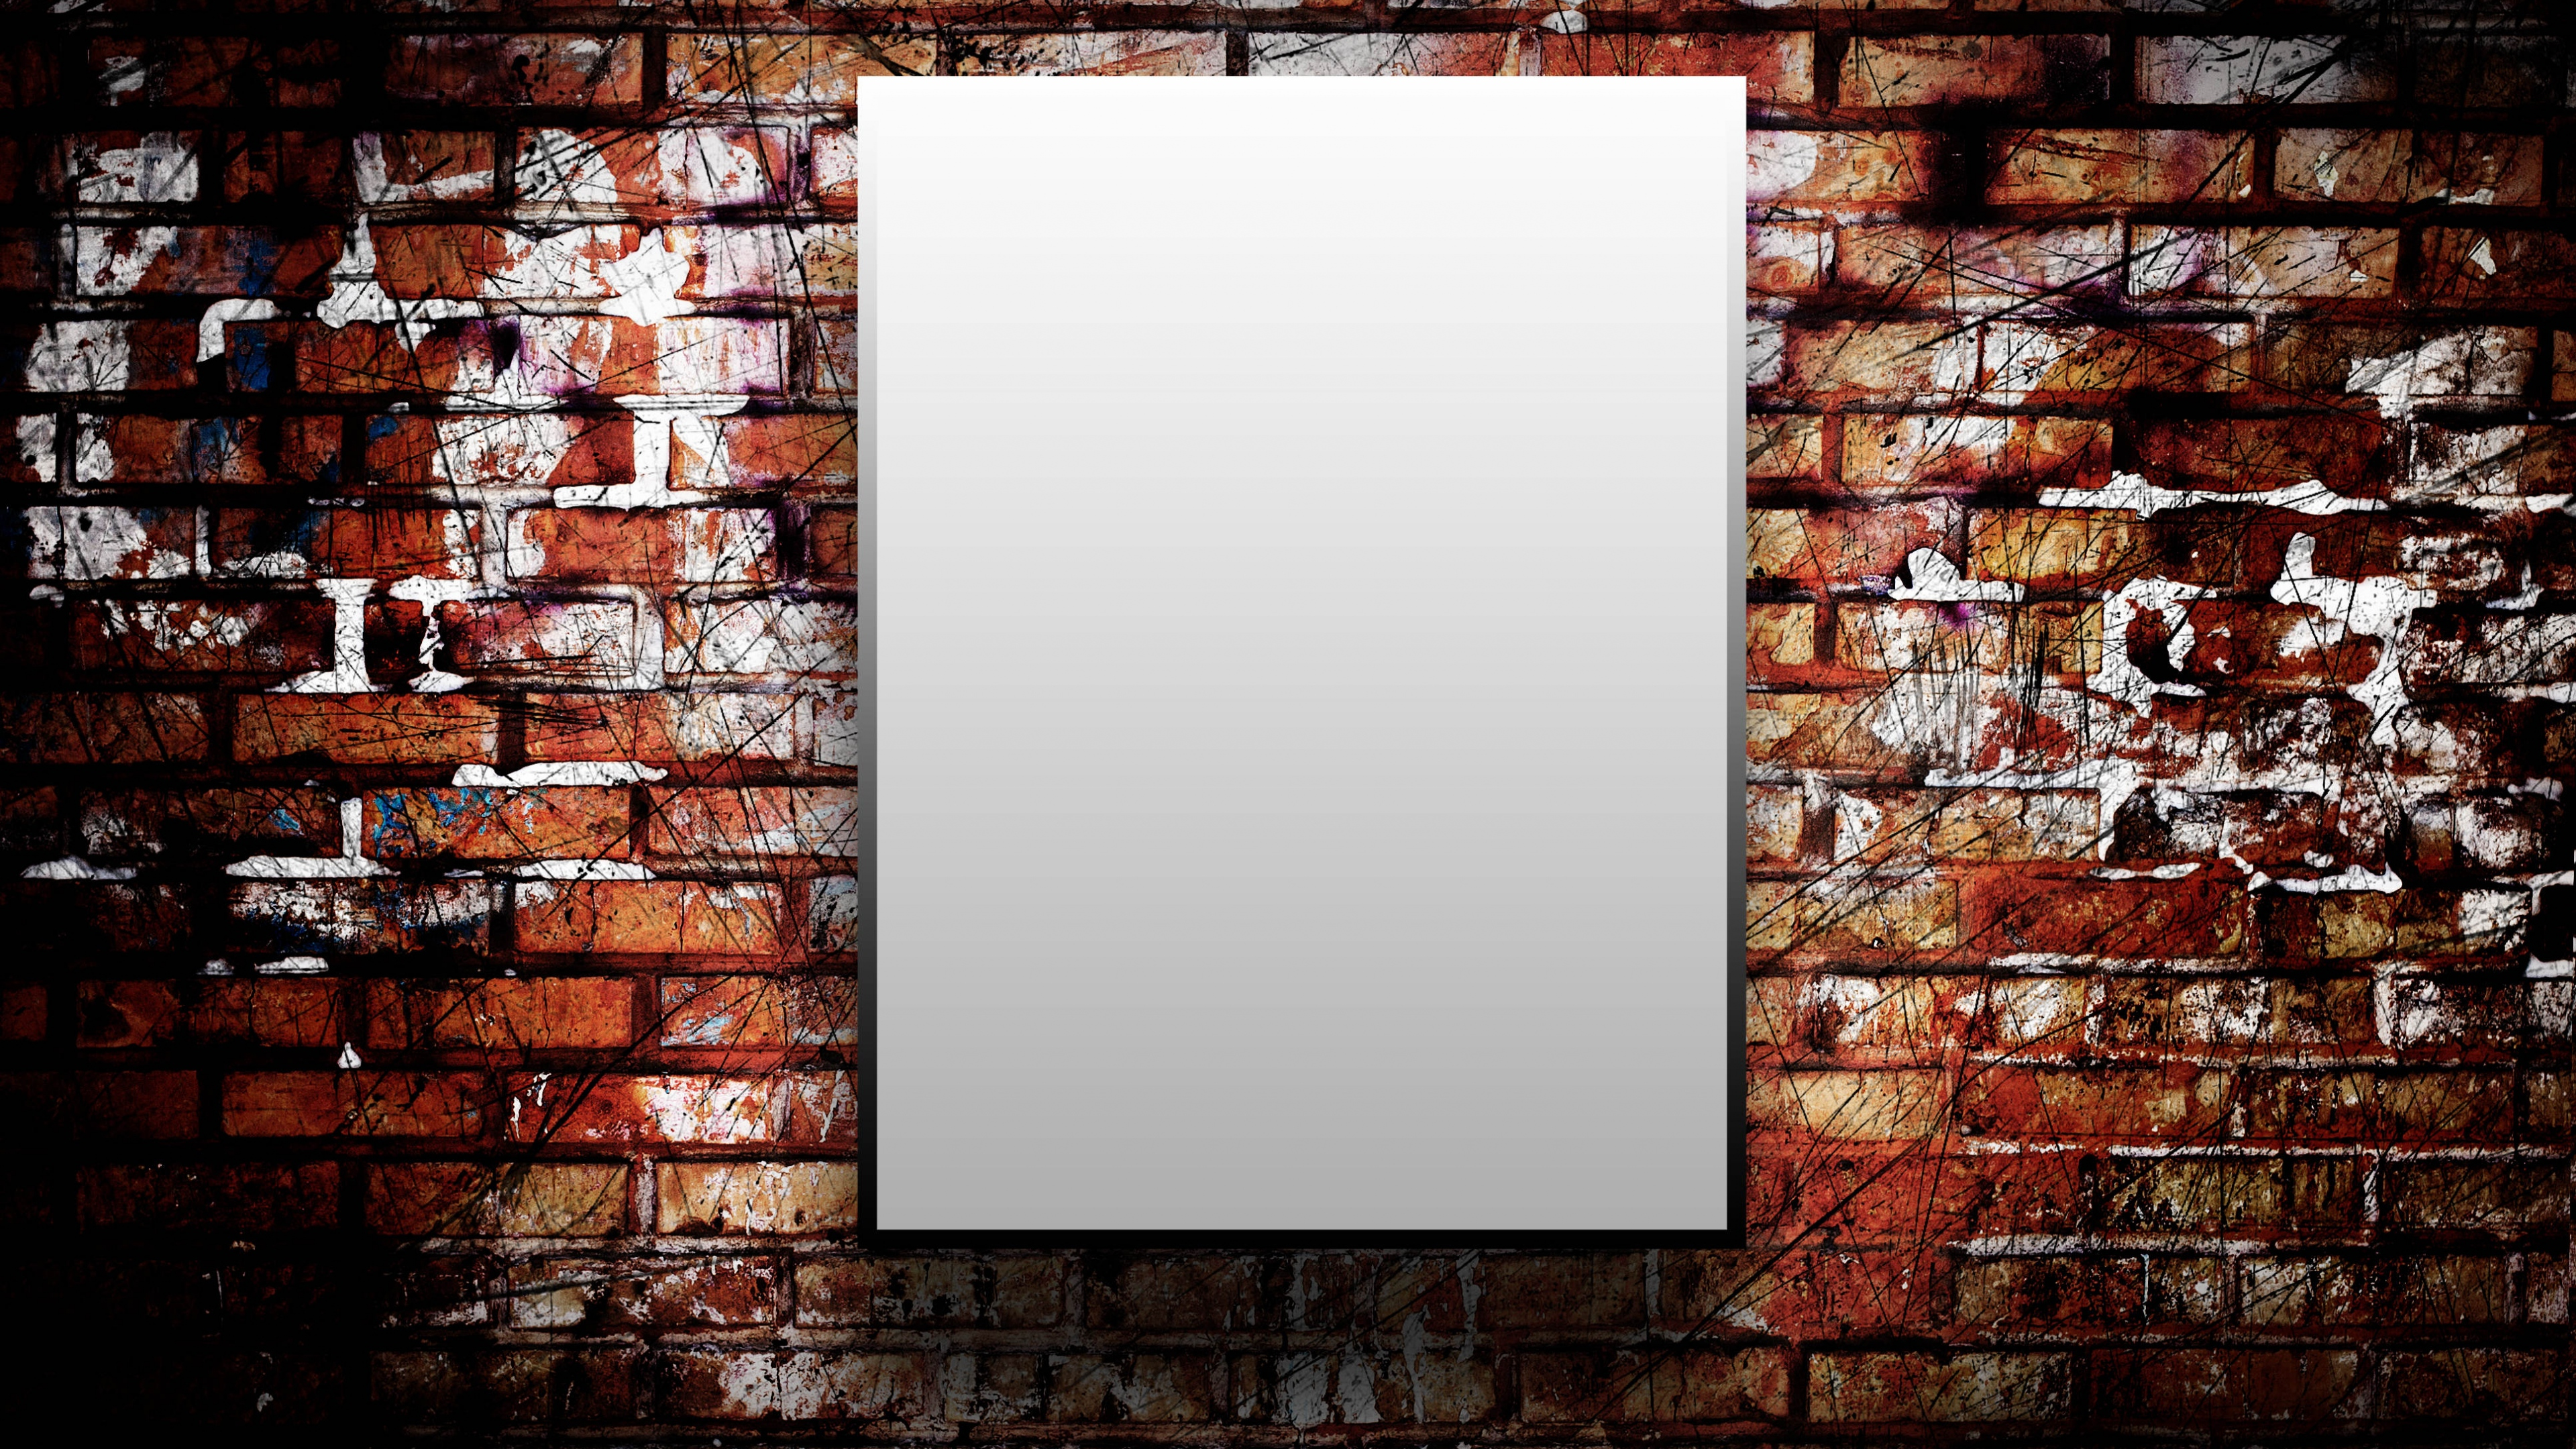 Frame Foto Dinding Hd Backgrounds Wall Group (73+)